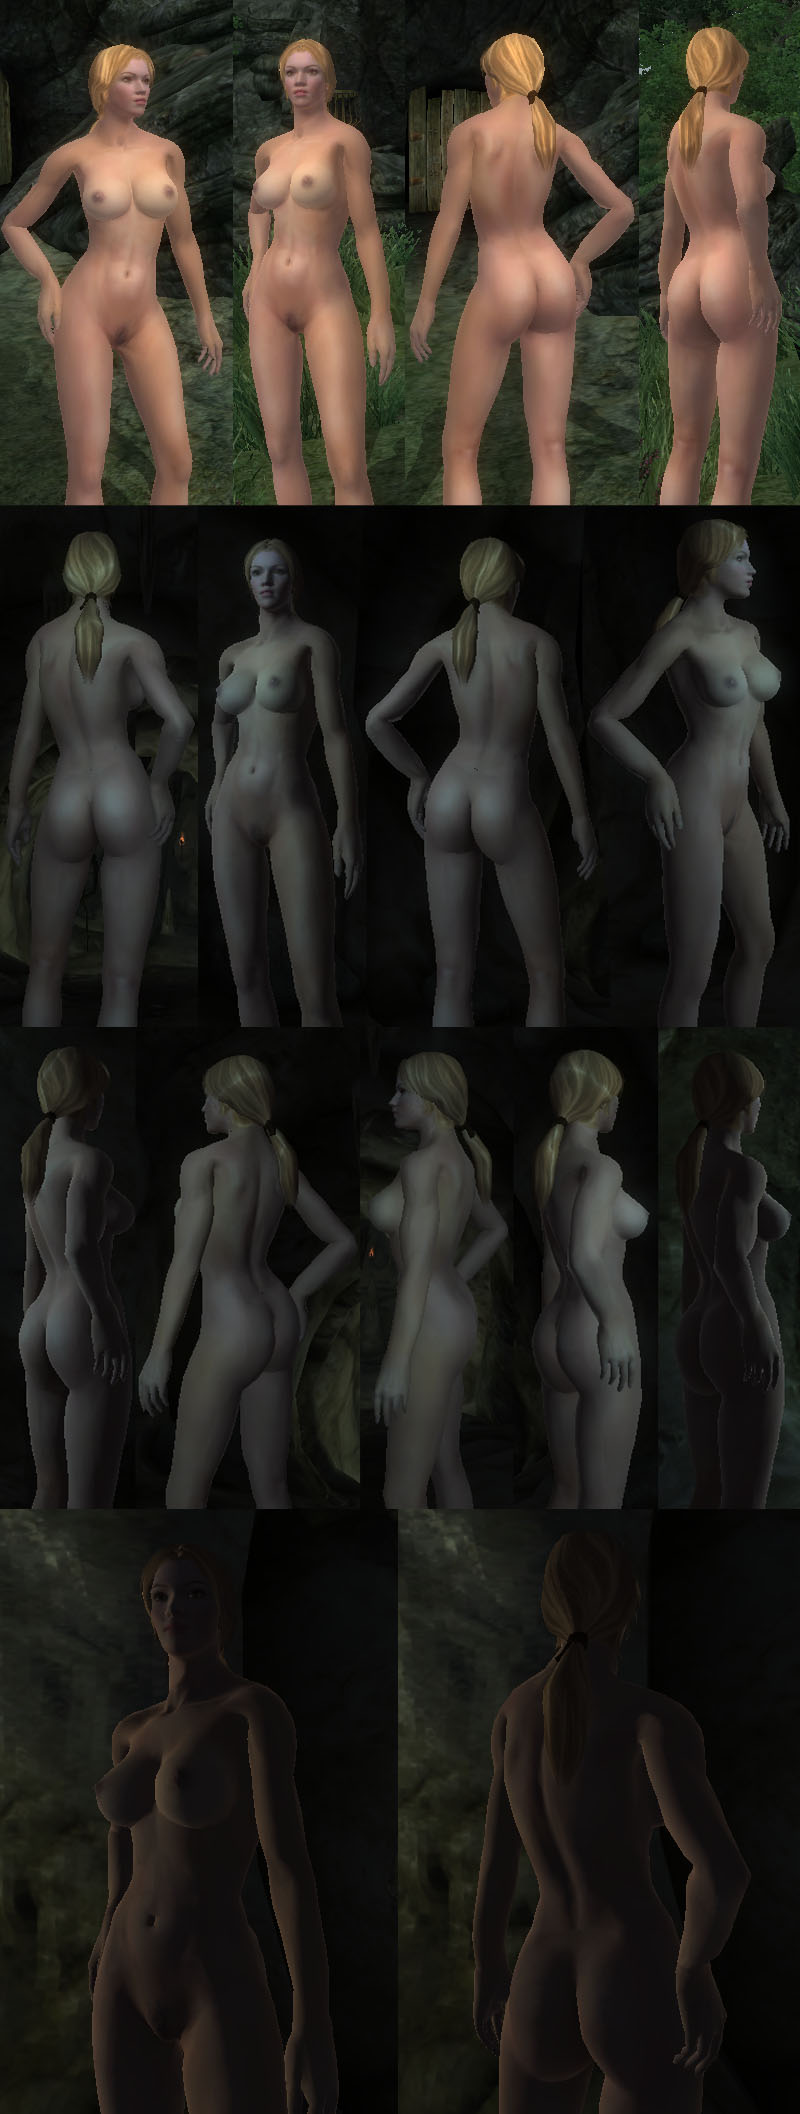 Hd nude patch for gta porn galleries